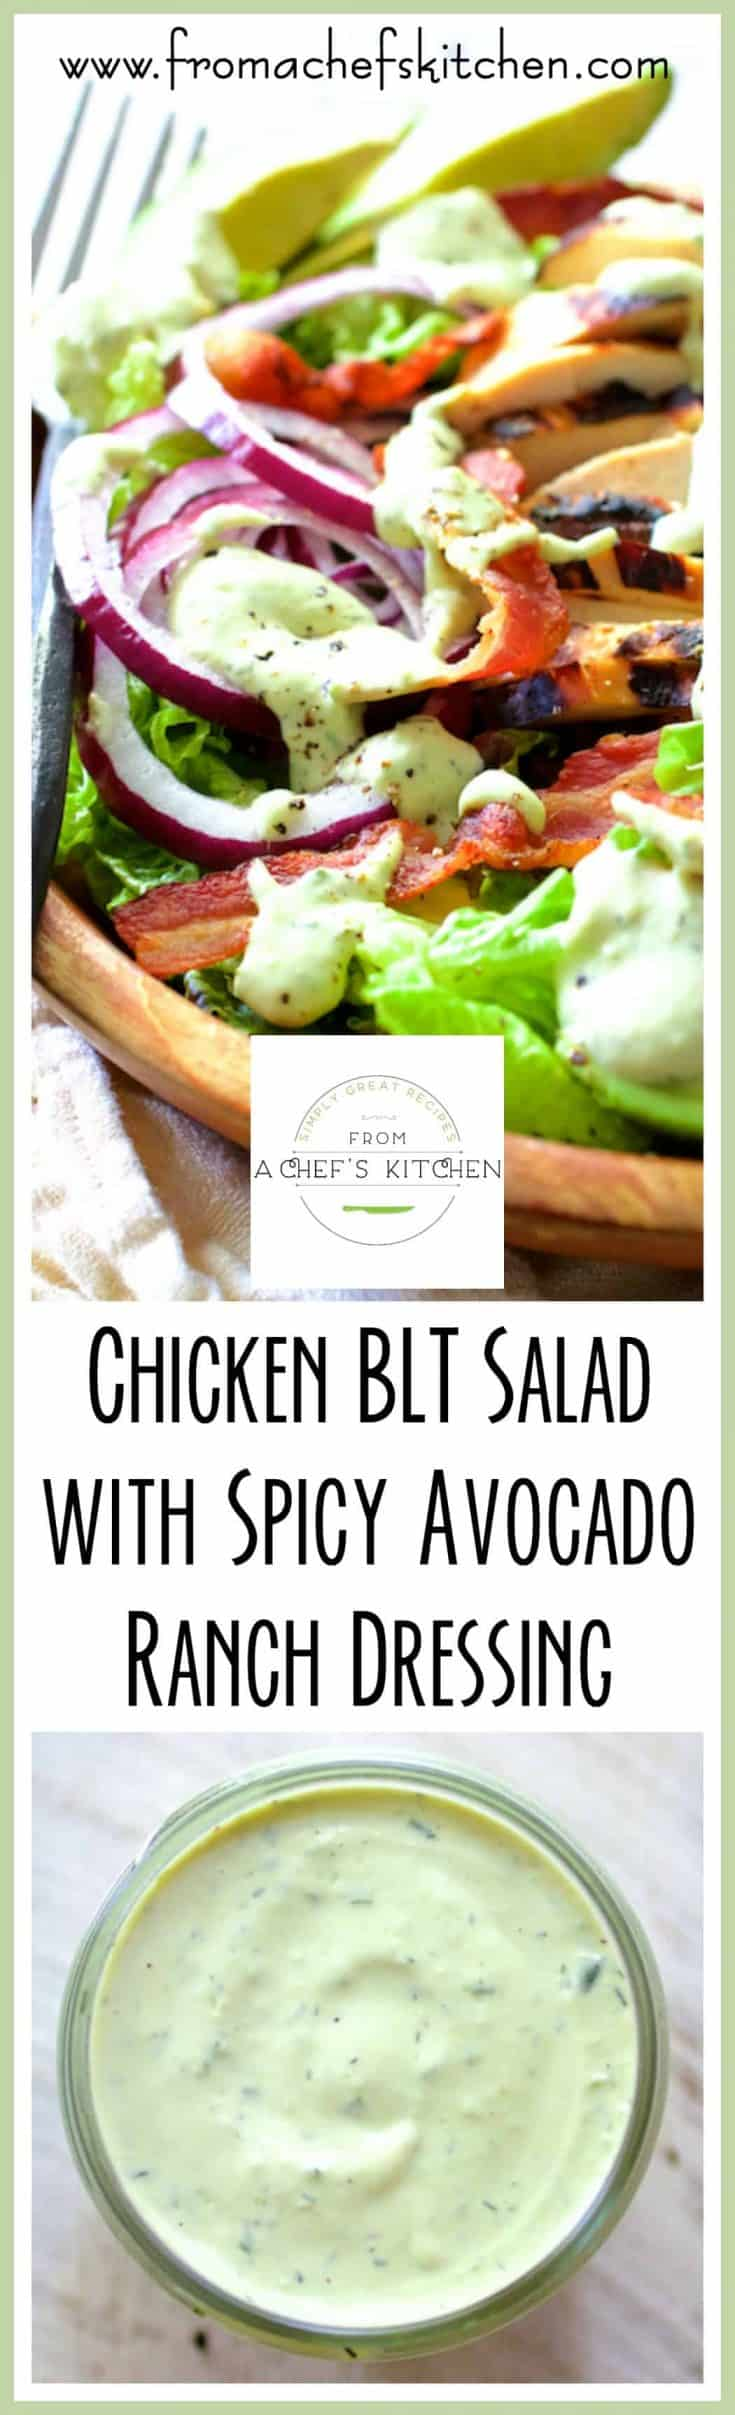 Chicken BLT Salad with Spicy Avocado Ranch Dressing is fresh, cool, crunchy and the perfect way to use up grilled chicken! #chicken #salad #chickensalad #maincoursesalad #dinnersalad #avocado #ranch